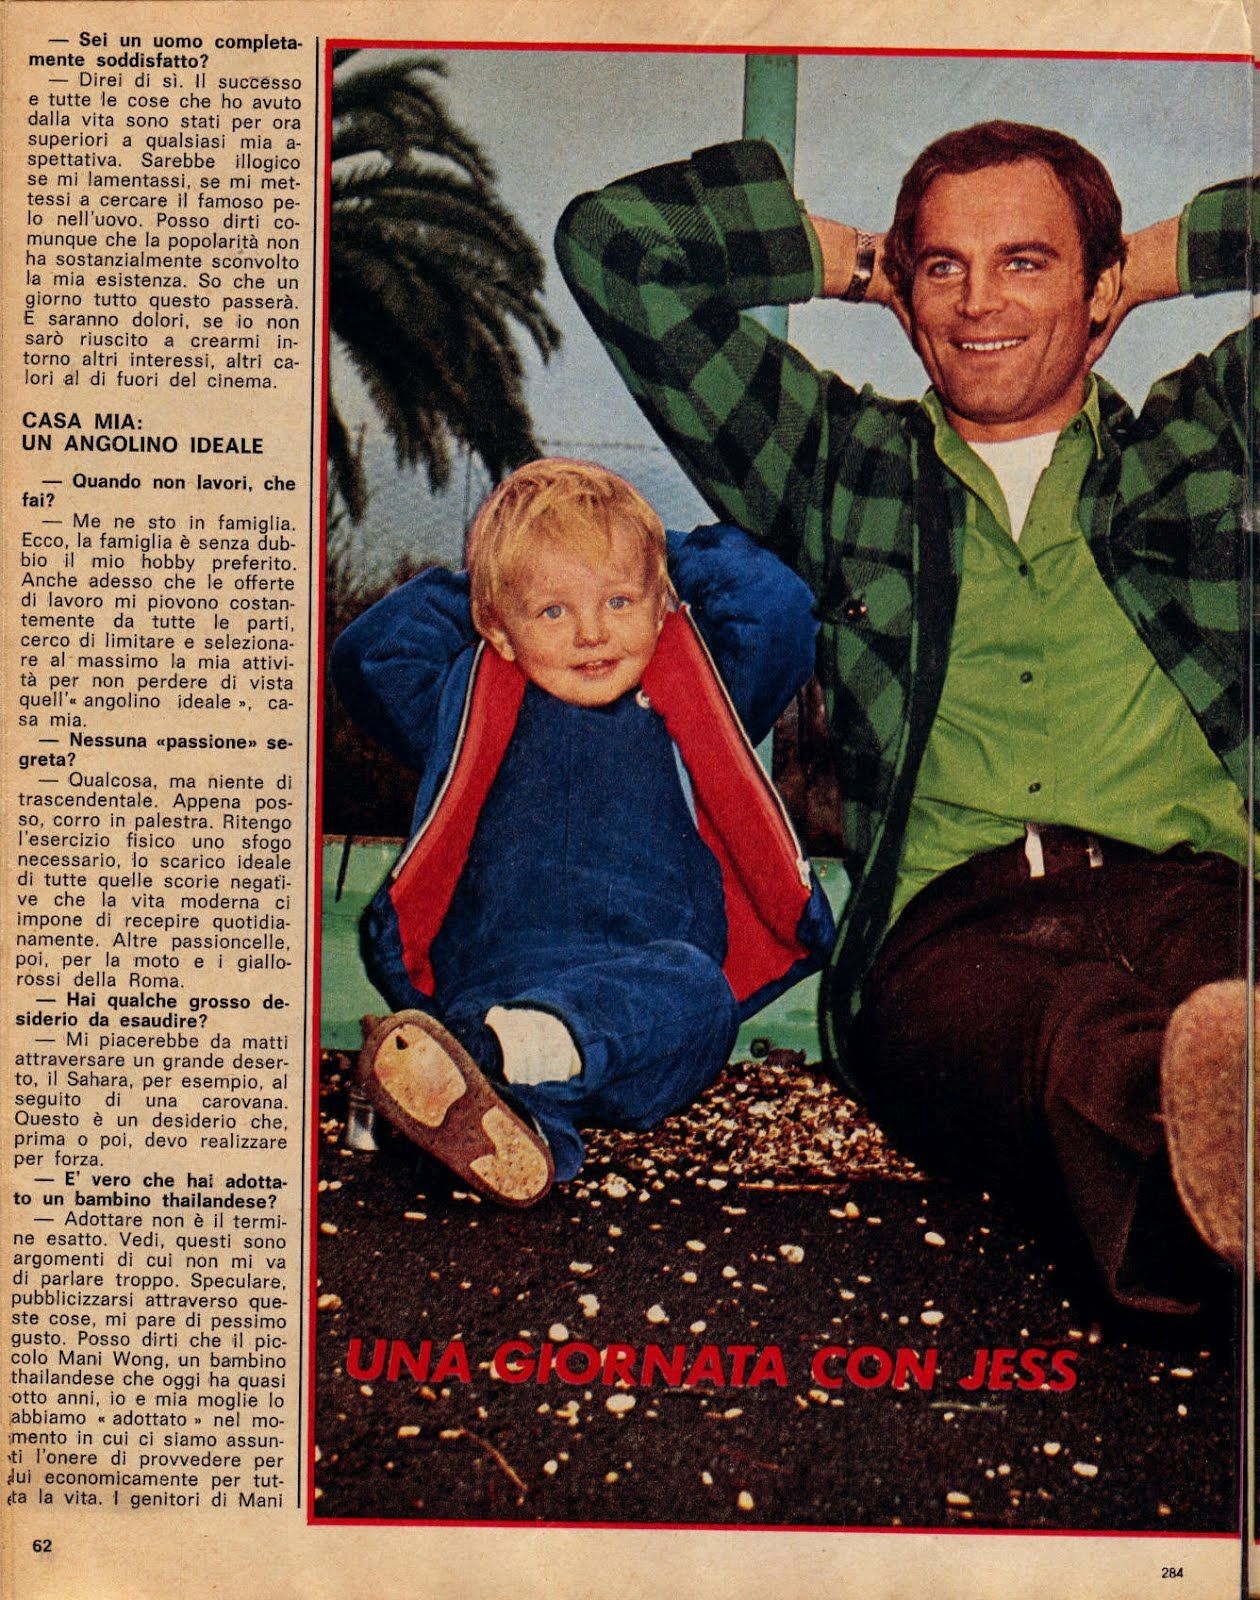 Terence Hill And His Son Jess Una Giornata Con Jess Terence Hill Mario Bud Spencer